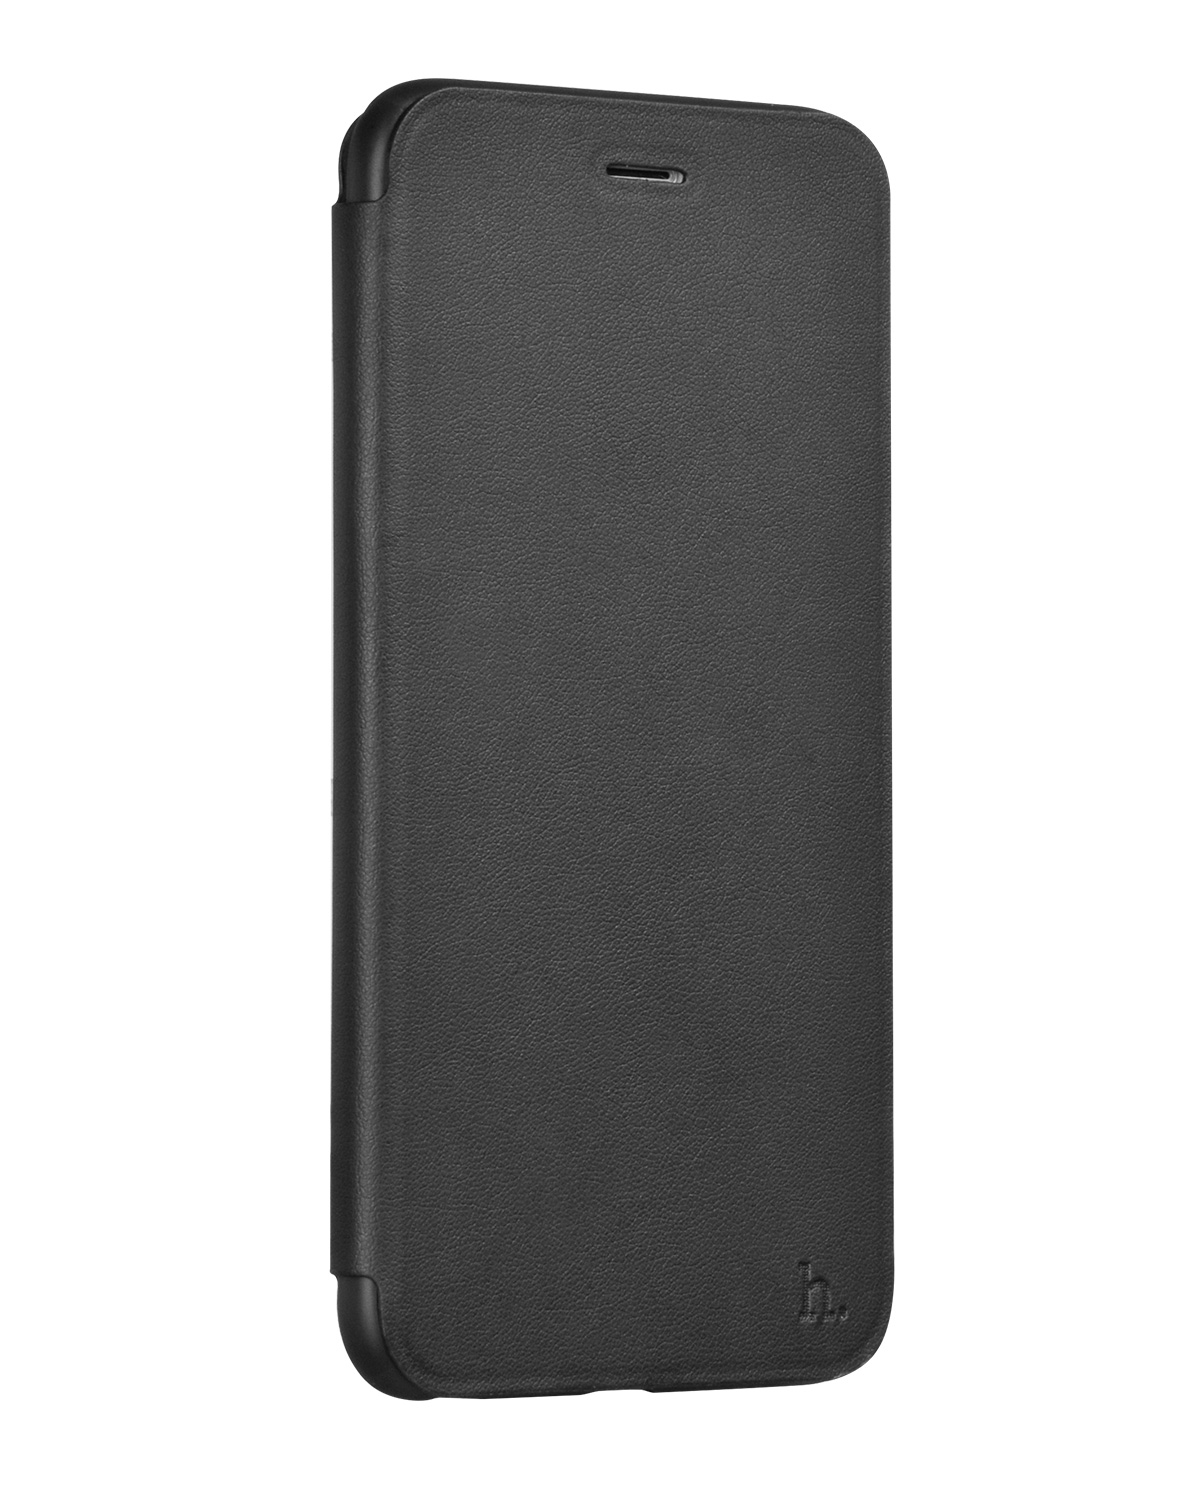 Pouzdro HOCO Nappa Leather – Black pro Apple iPhone 5/5S/SE